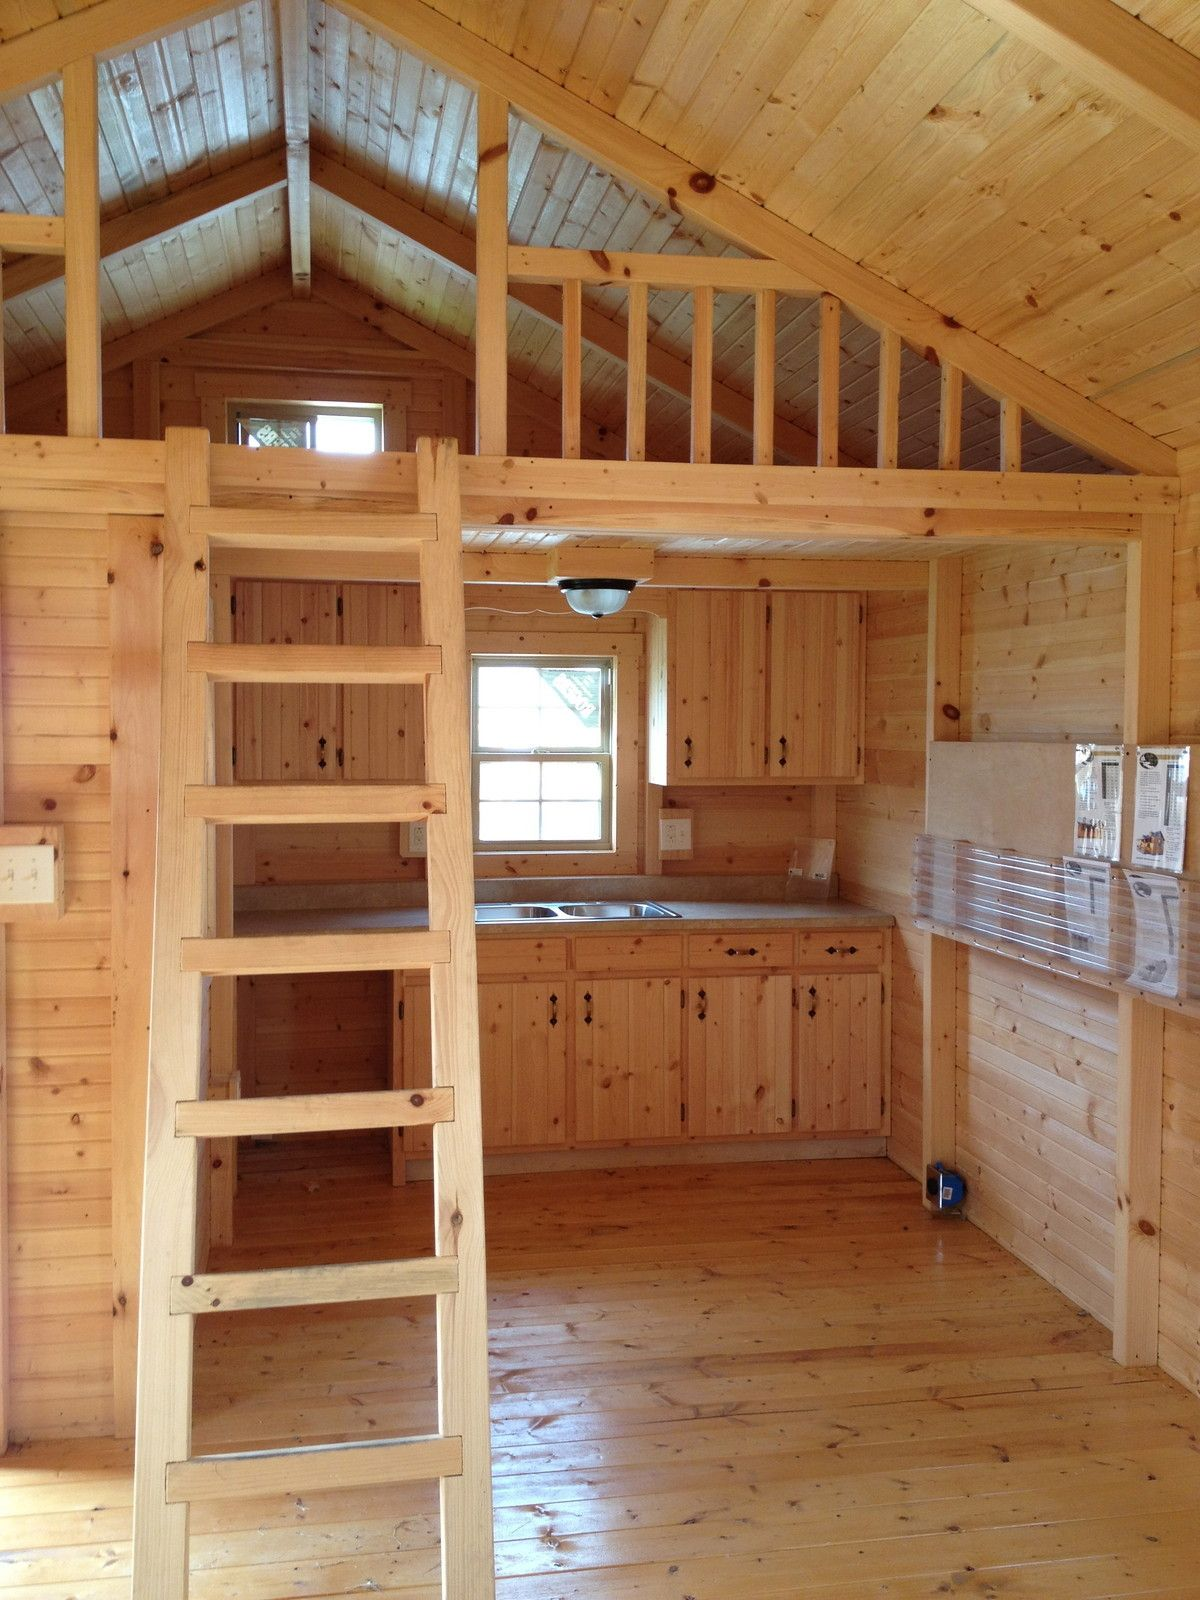 Tiny house ebay 14x24 cabin kit tiny homes pinterest for Barn loft homes